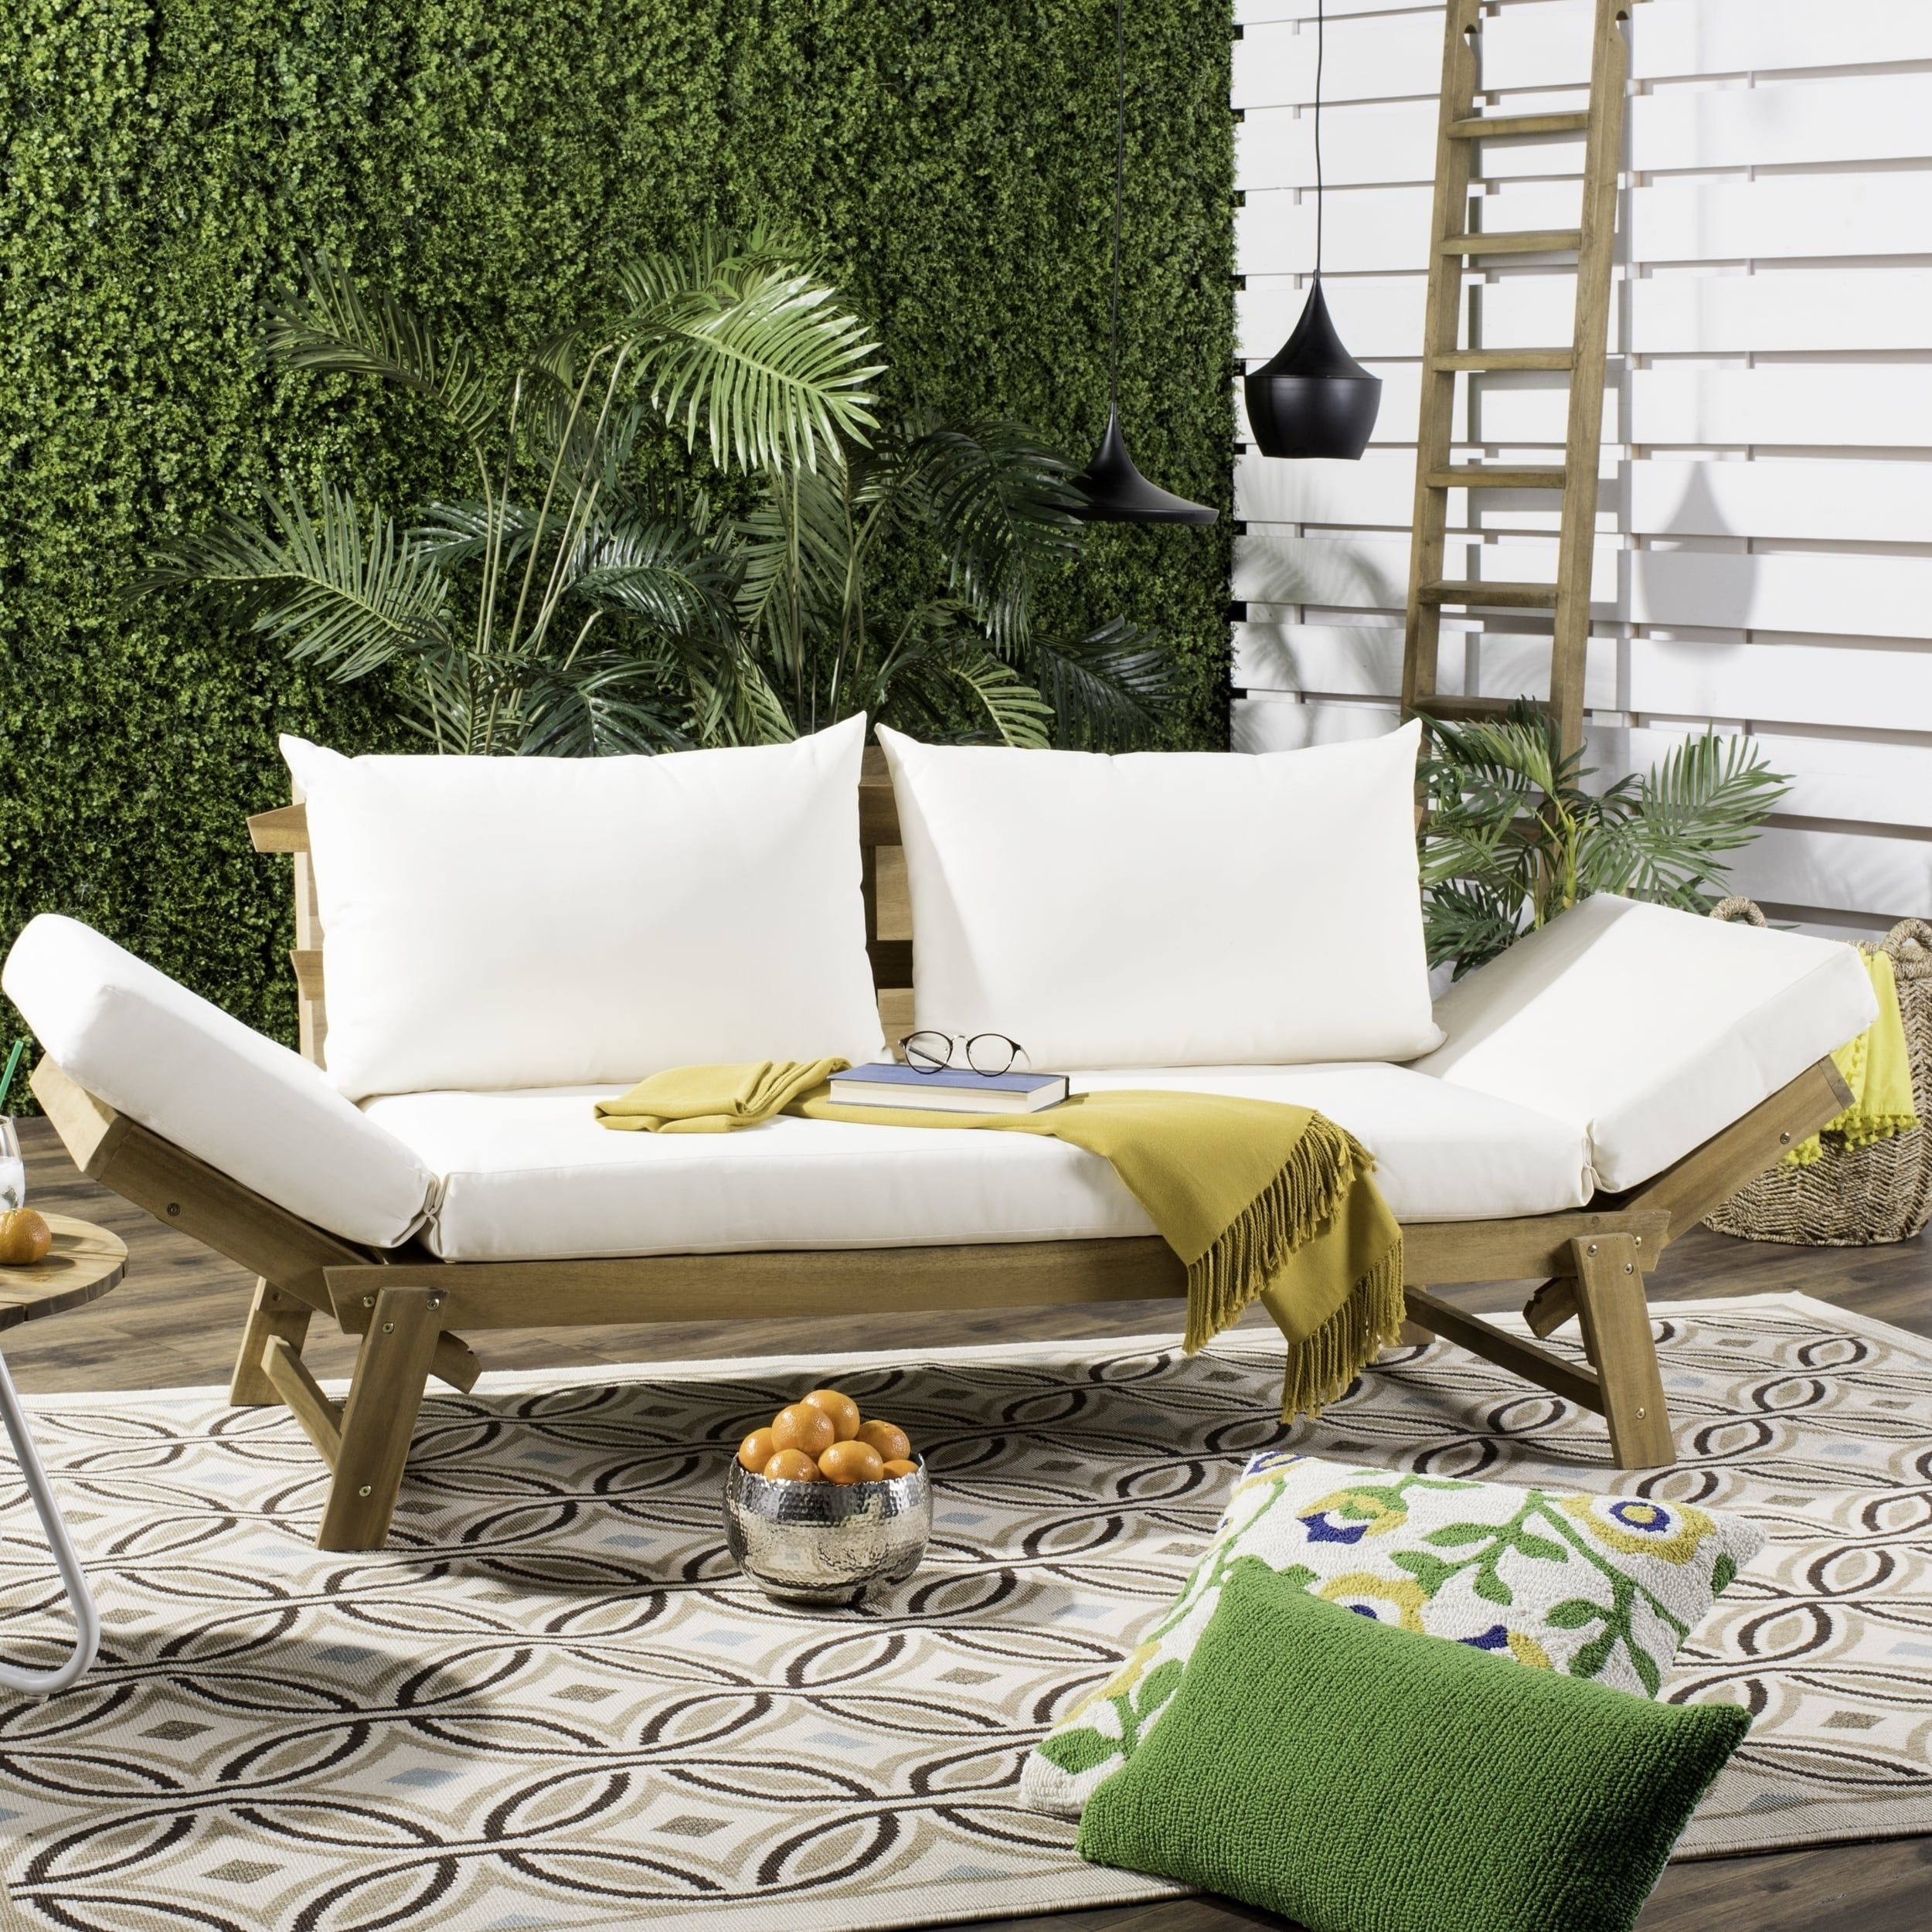 outdoor furniture nz of full contemporary coast in uk cushions australia inspiration gold just garden size luxury patio modern funky ideas